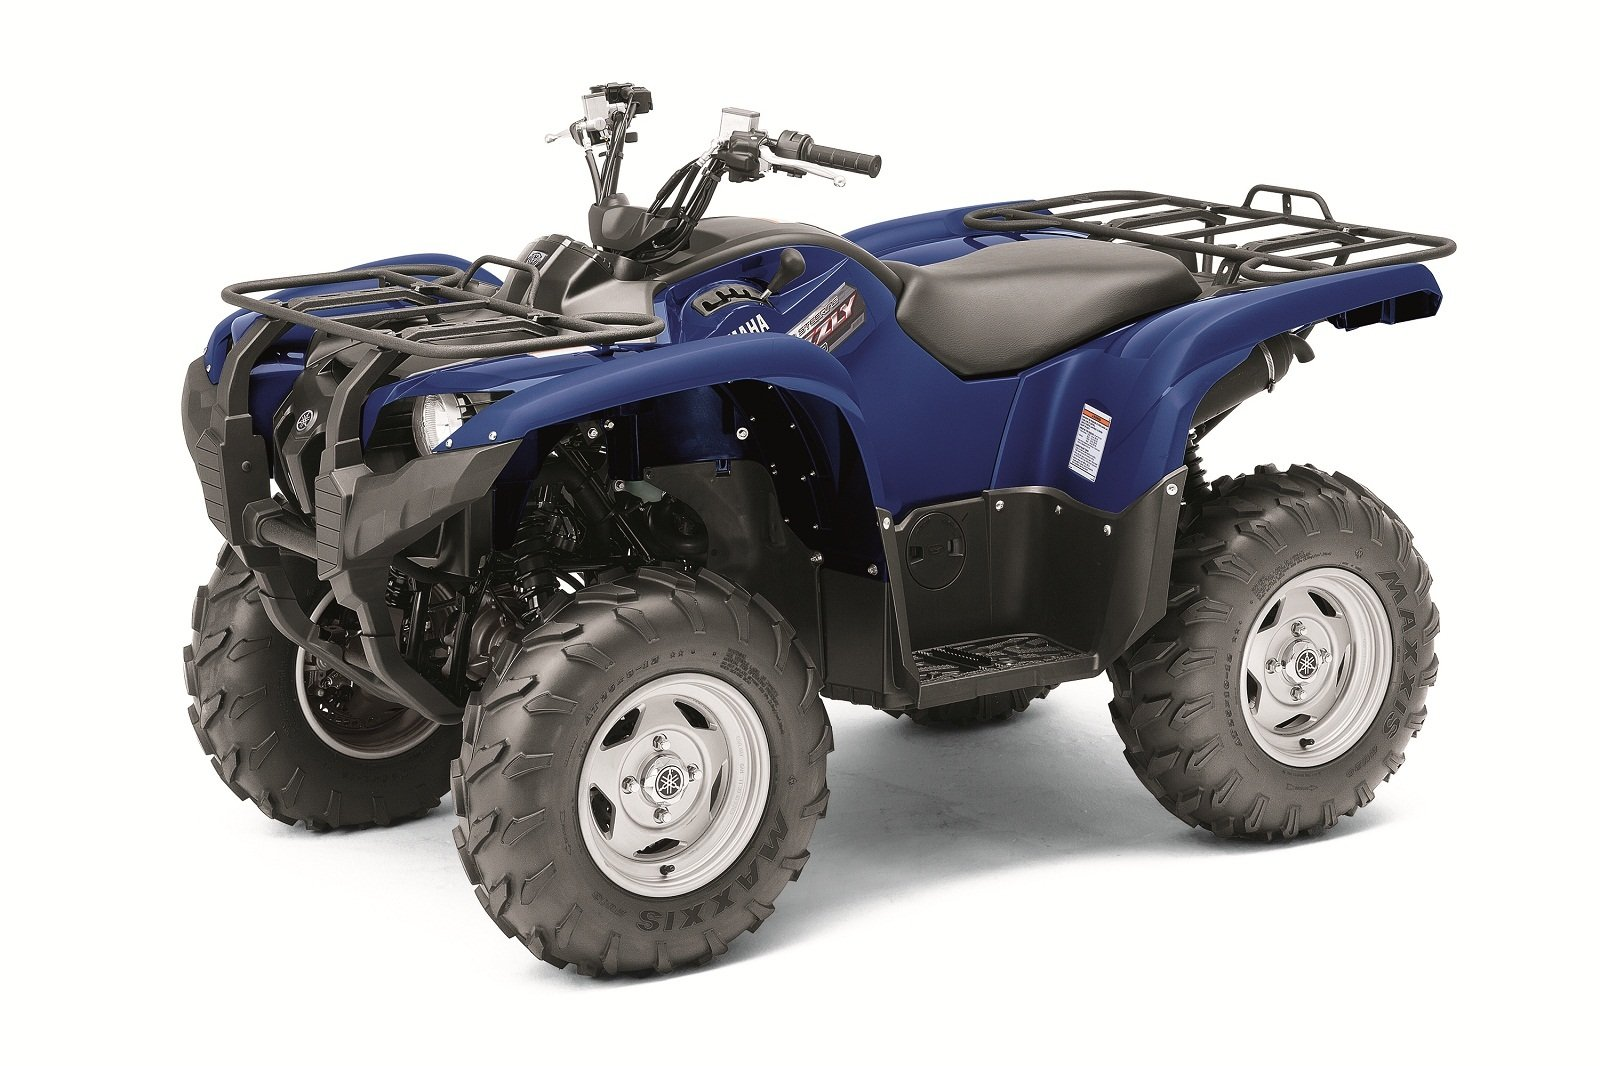 2012 yamaha grizzly 700 fi auto 4x4 eps picture 421599 for Yamaha 700 motorcycle